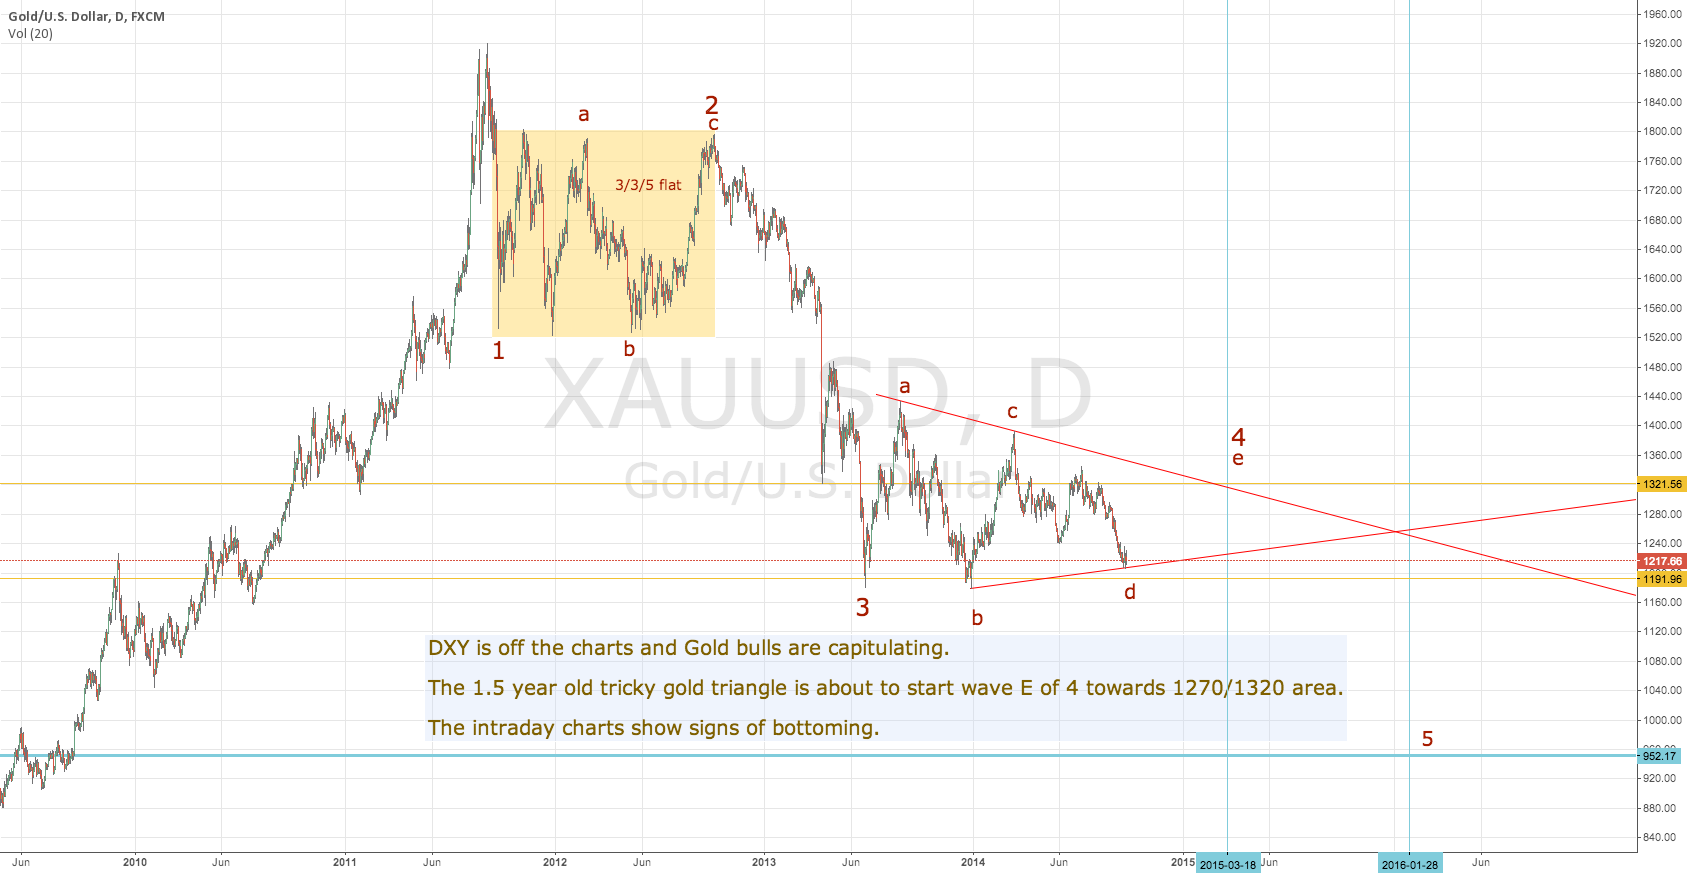 Gold about to start wave E of 4 towards 1270/1320